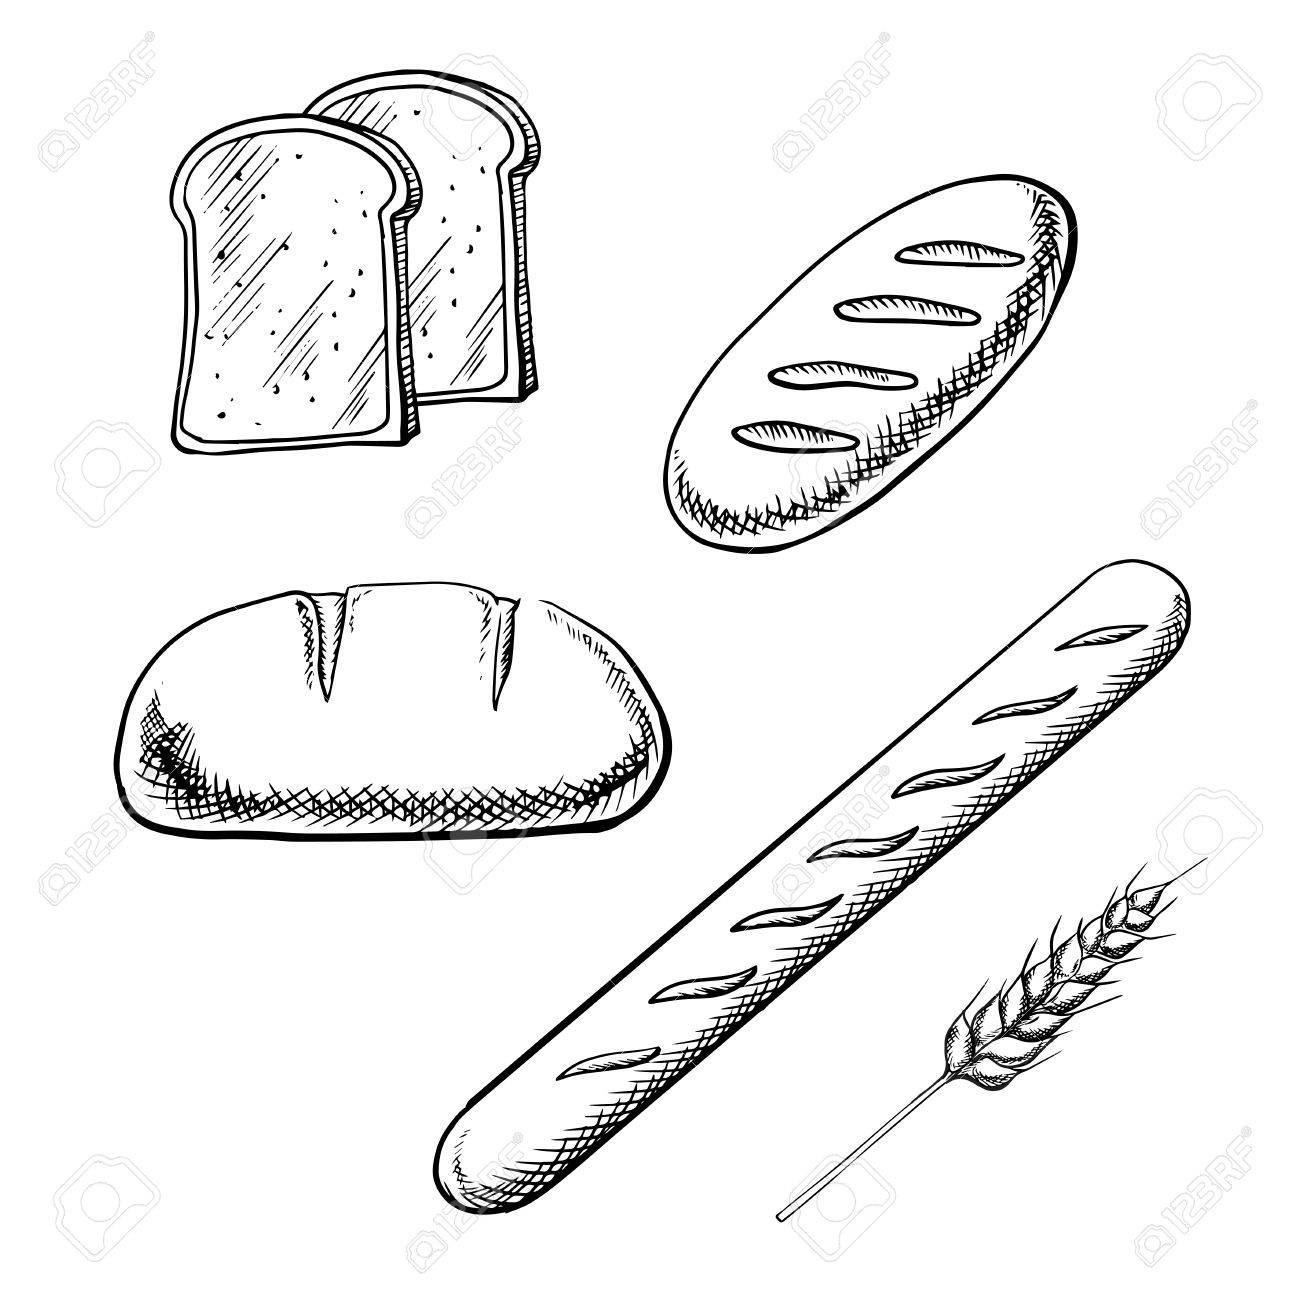 Toast Bread Slices Long Loaves And French Baguette With Wheat Spikelet Isolated On White Background